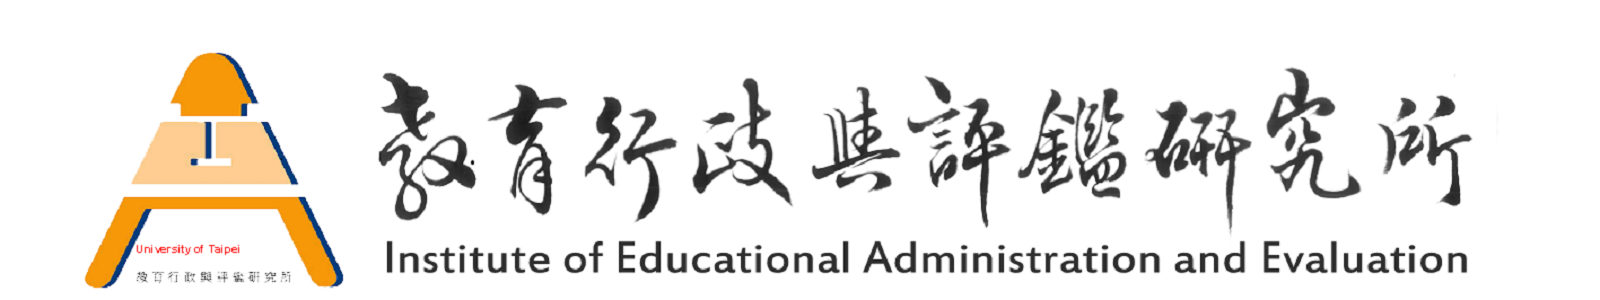 Institute of Educational Administration and Evaluation